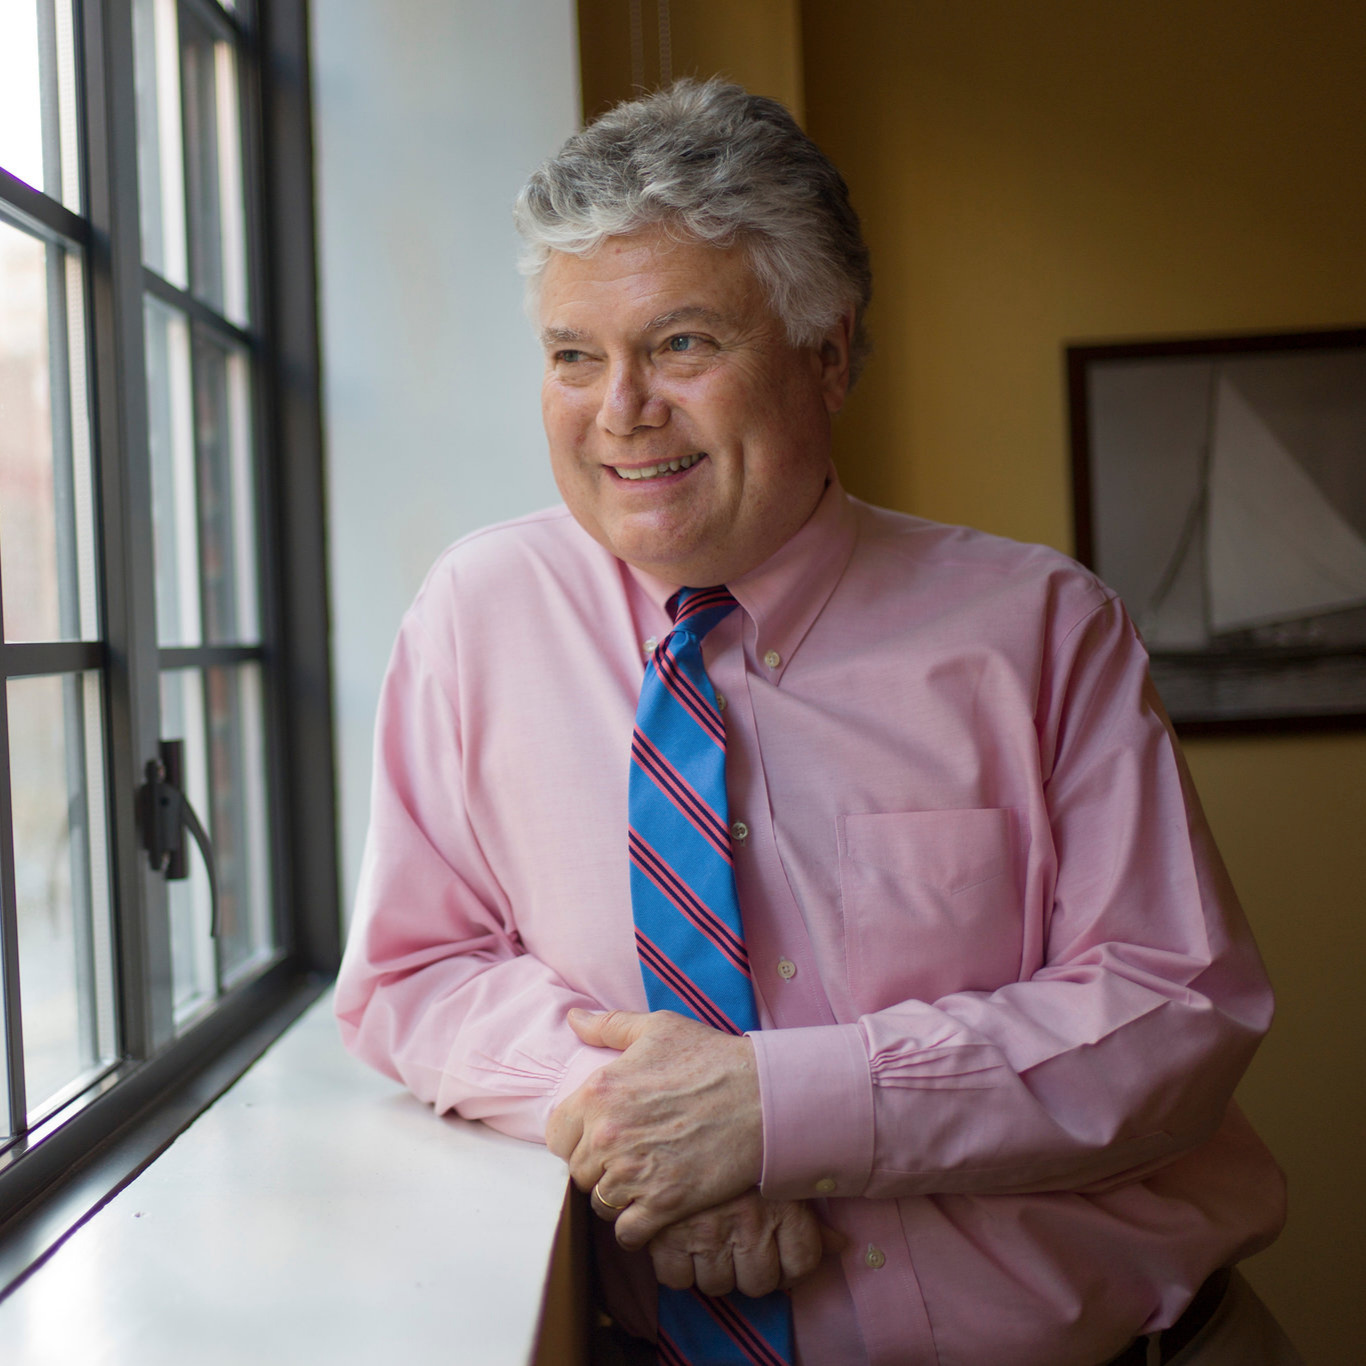 Dr. Ned Hallowell - ADHD & Behavioral Issues Expert